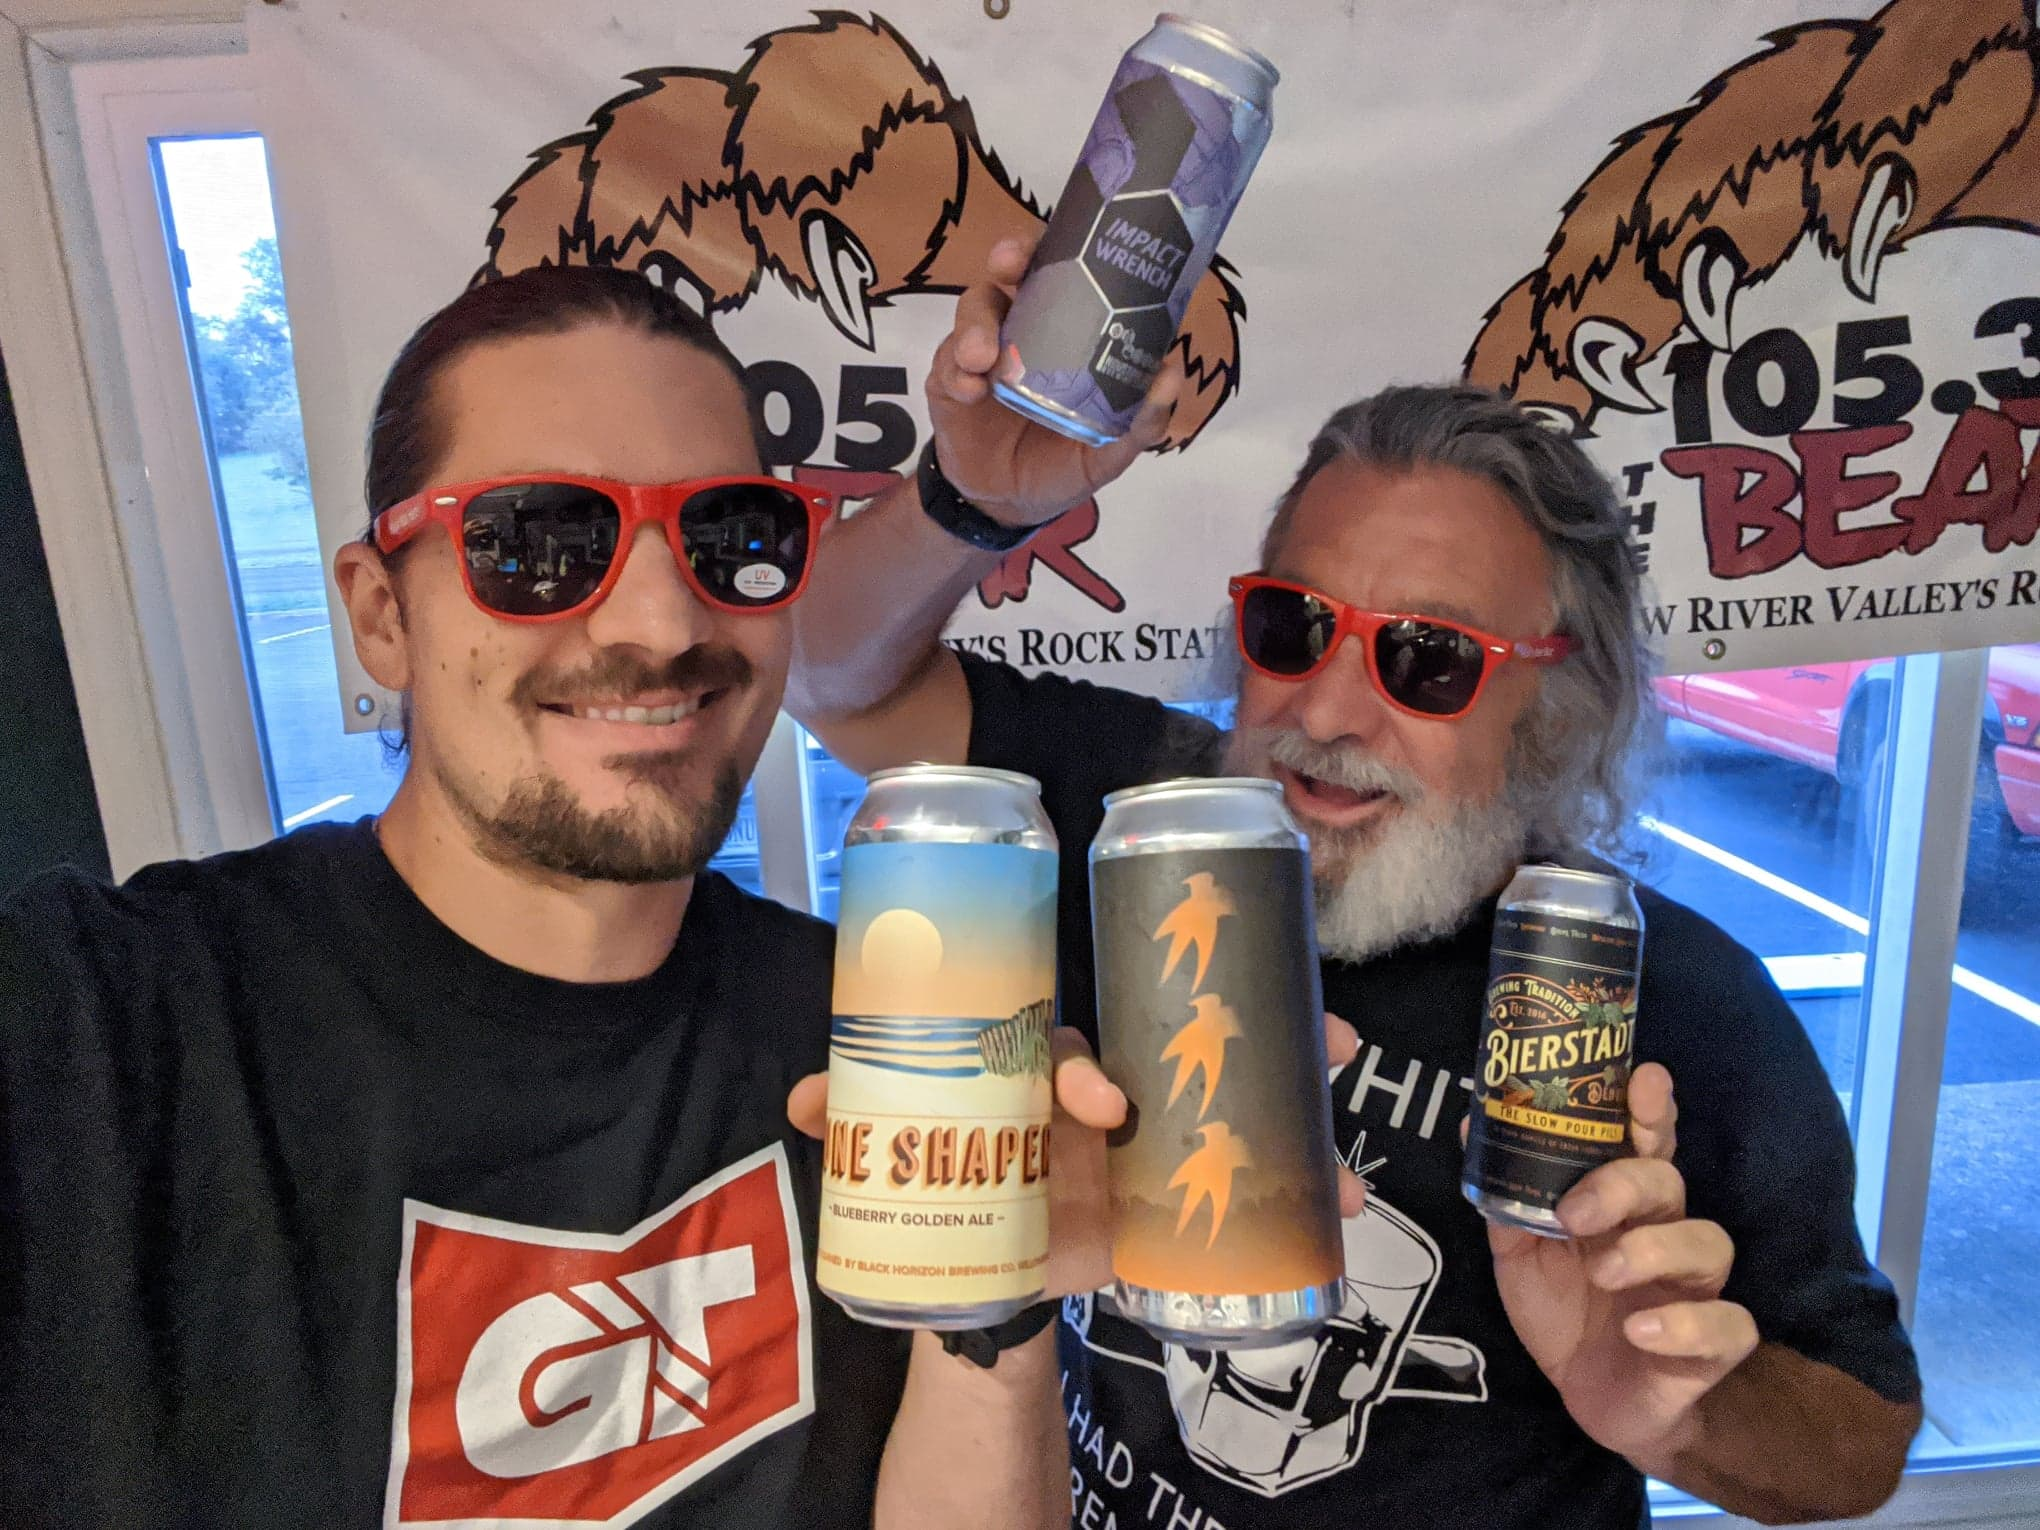 8/25/20 Brewsday Tuesday – BEER NOW EXCHANGE